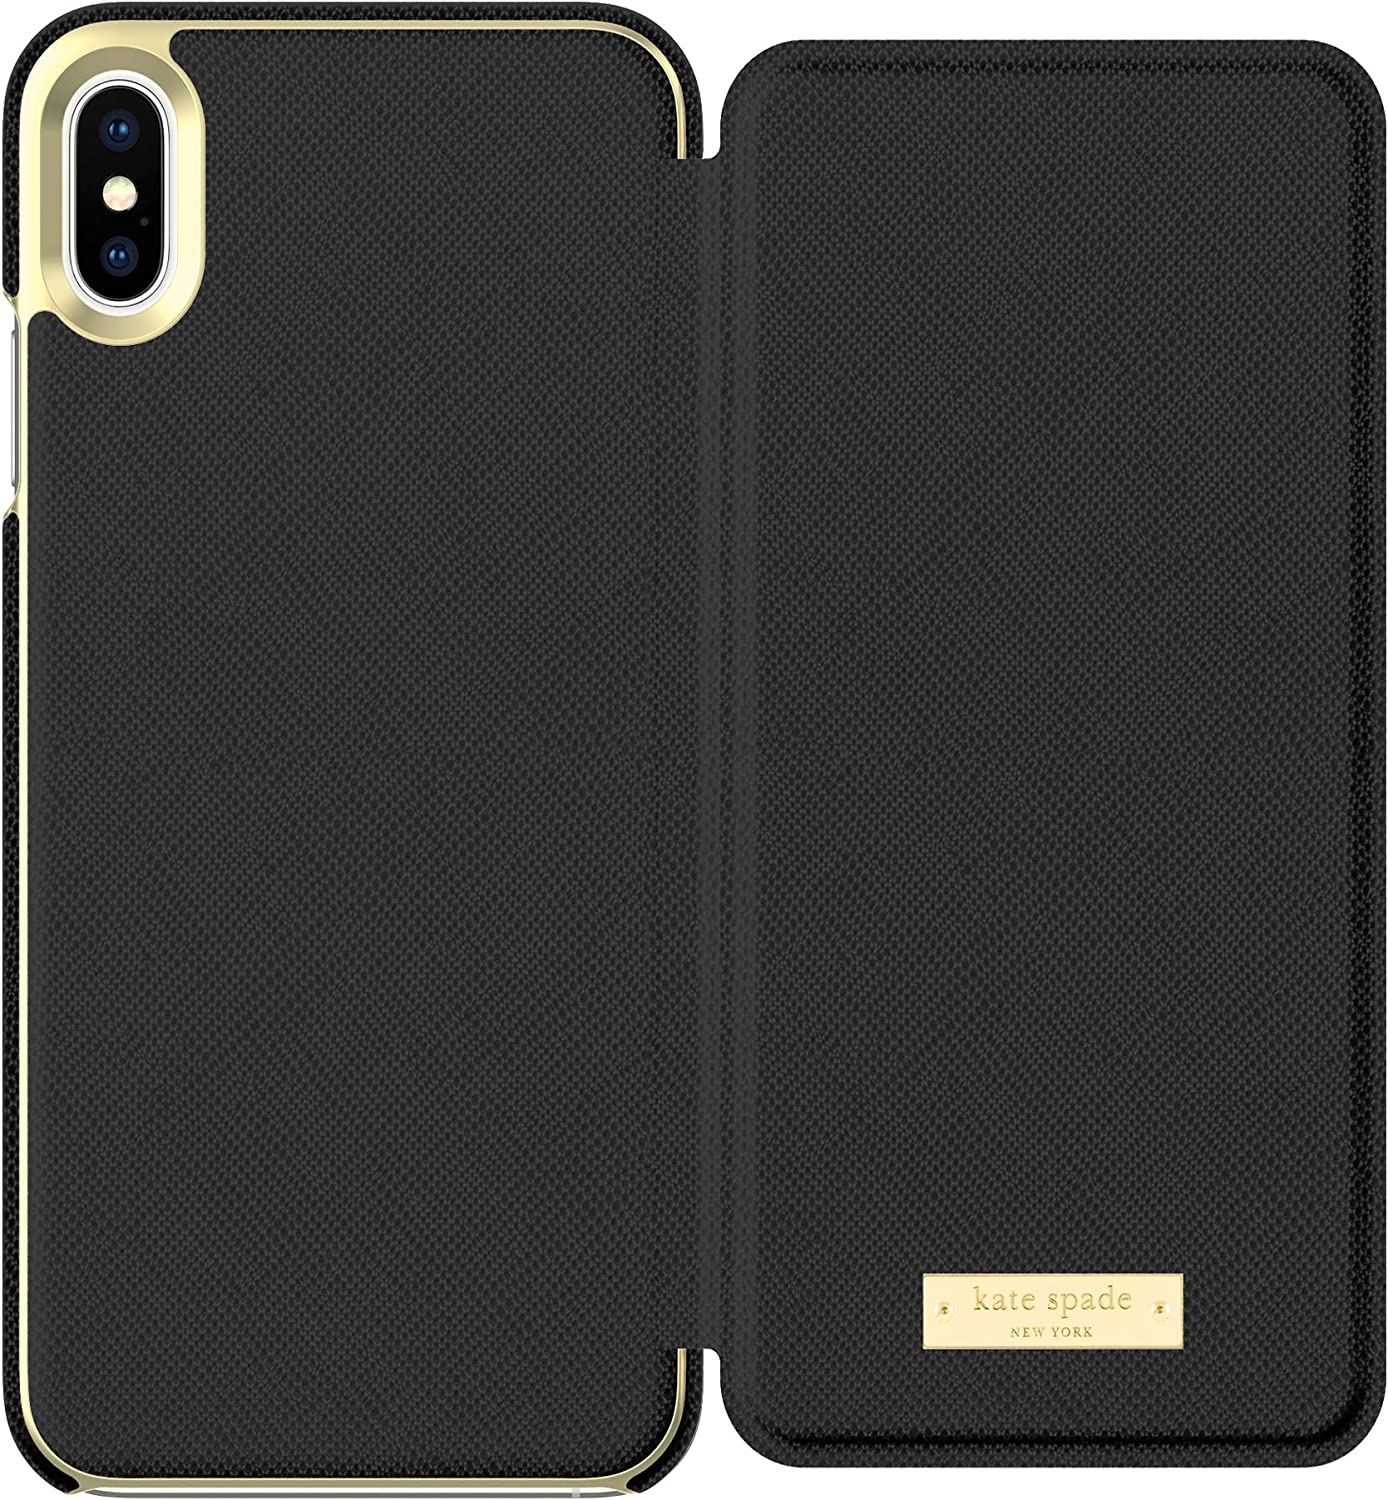 kate spade new york Black Folio Case for iPhone Xs Max - Saffiano Leather ID & Card Holder